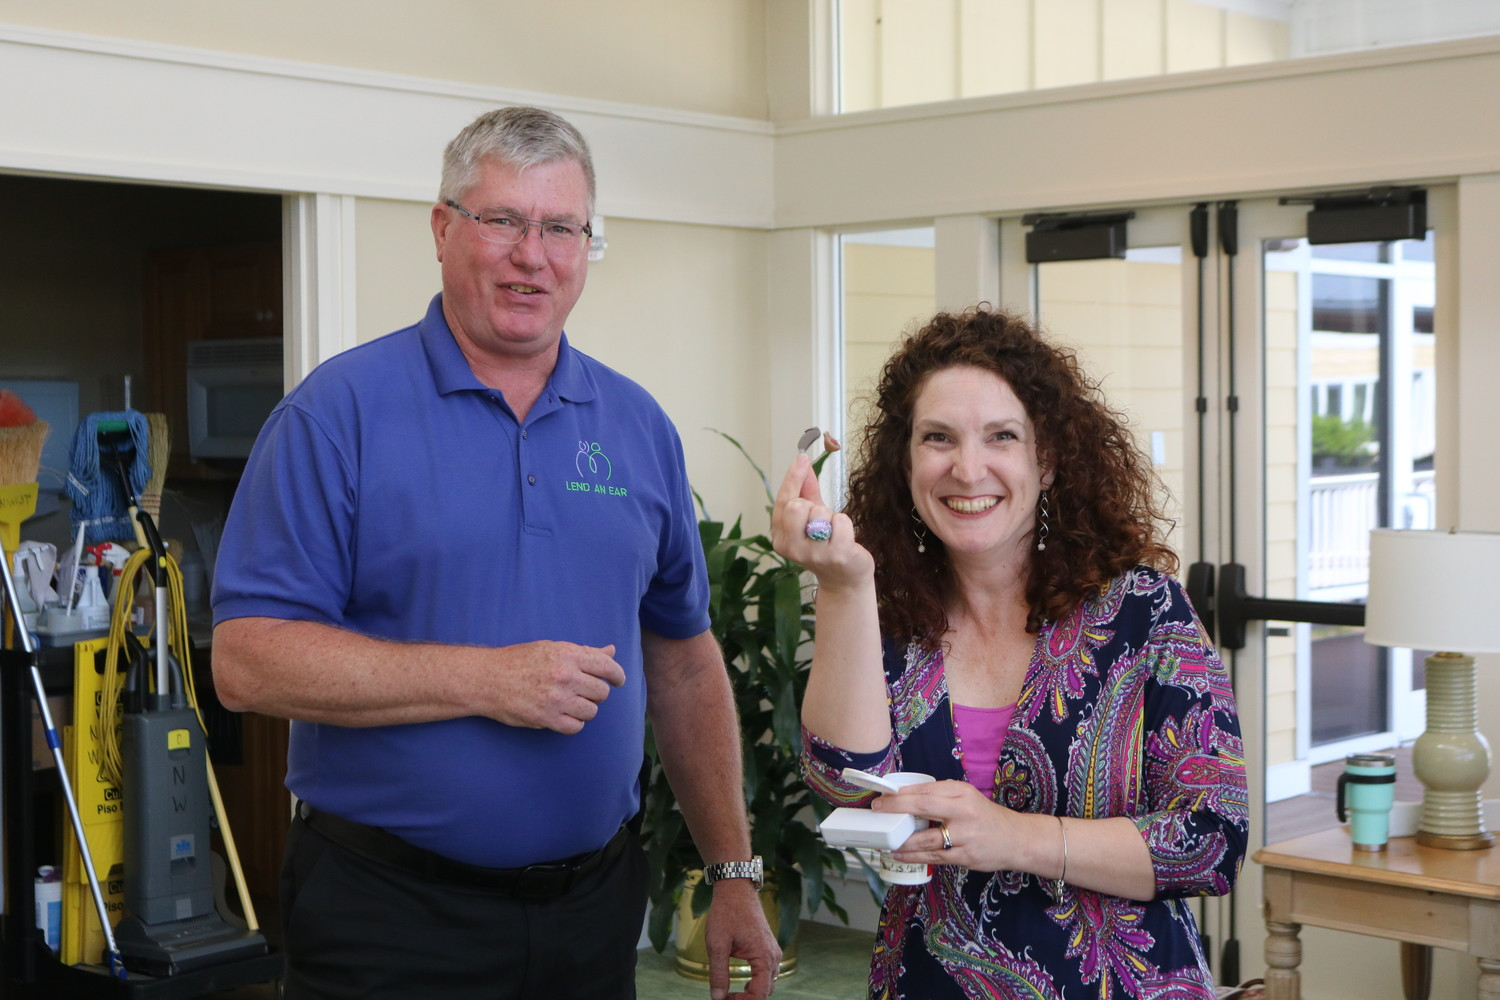 Sonia Howley of the St. Johns County School District celebrates as she receives the donated hearing aids from Lend an Ear Outreach Executive Director Scott Hetzinger.